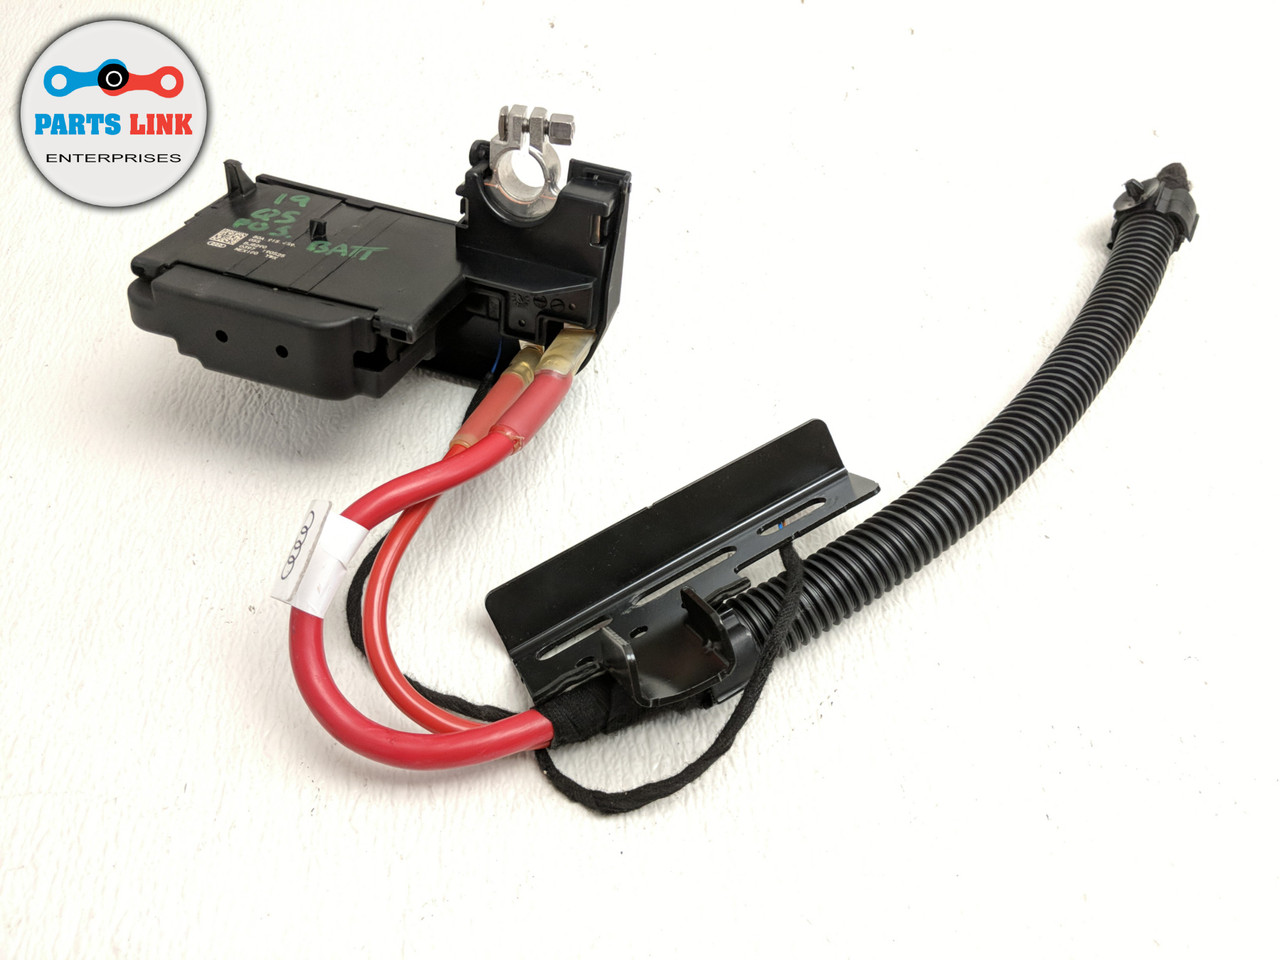 2018-2019 AUDI Q5 FY BATTERY POSITIVE TERMINAL CABLE HARNESS WIRE FUSE  WIRING OE - PARTS LINK ENT | Audi Q5 Wiring |  | Parts Link Enterprise